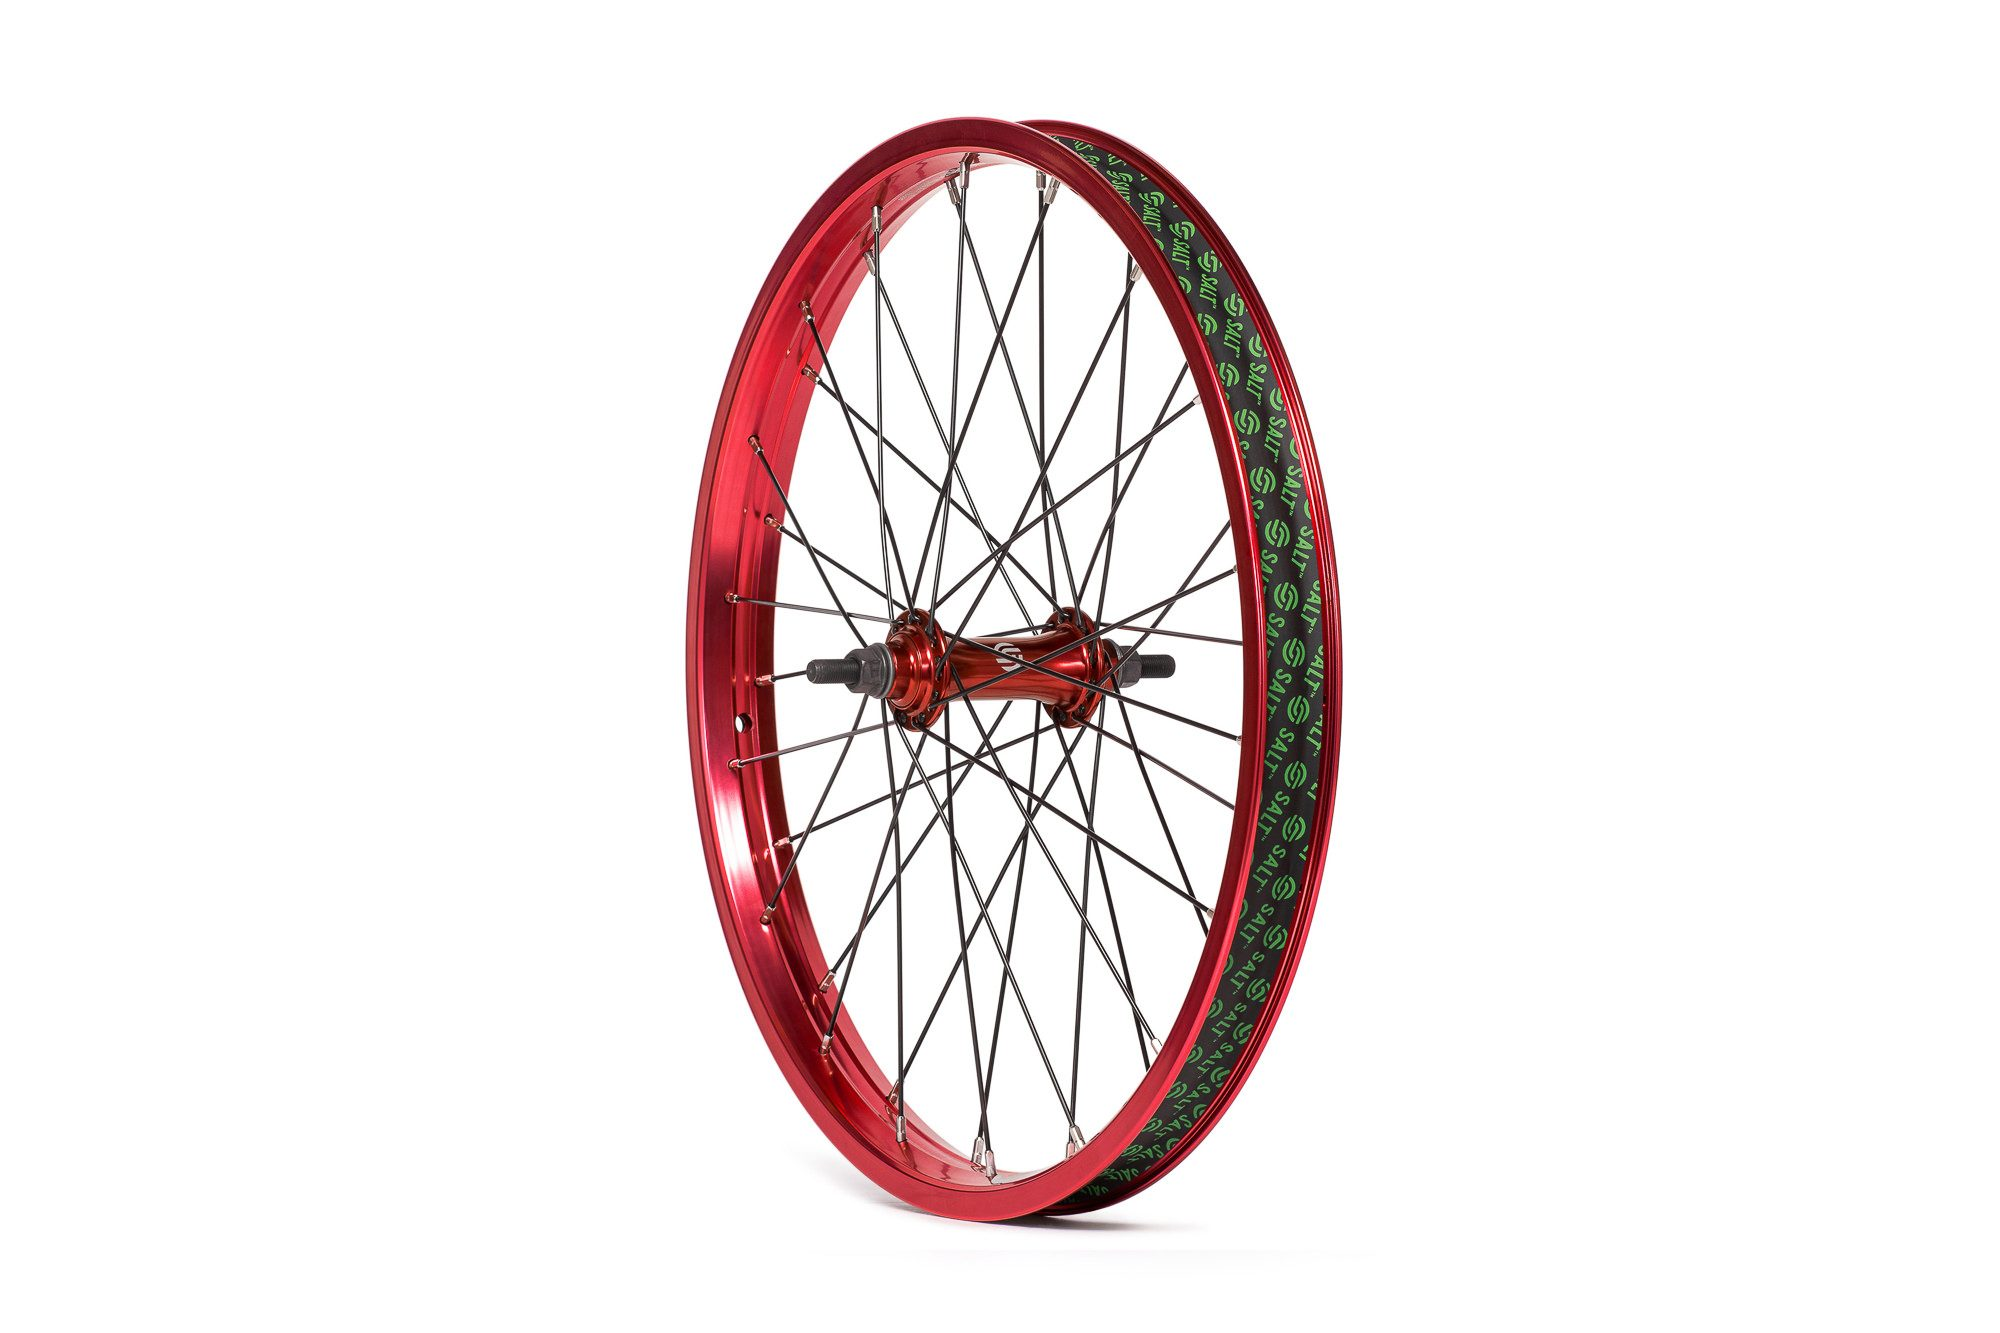 Salt_Everest_front_wheel_red_02